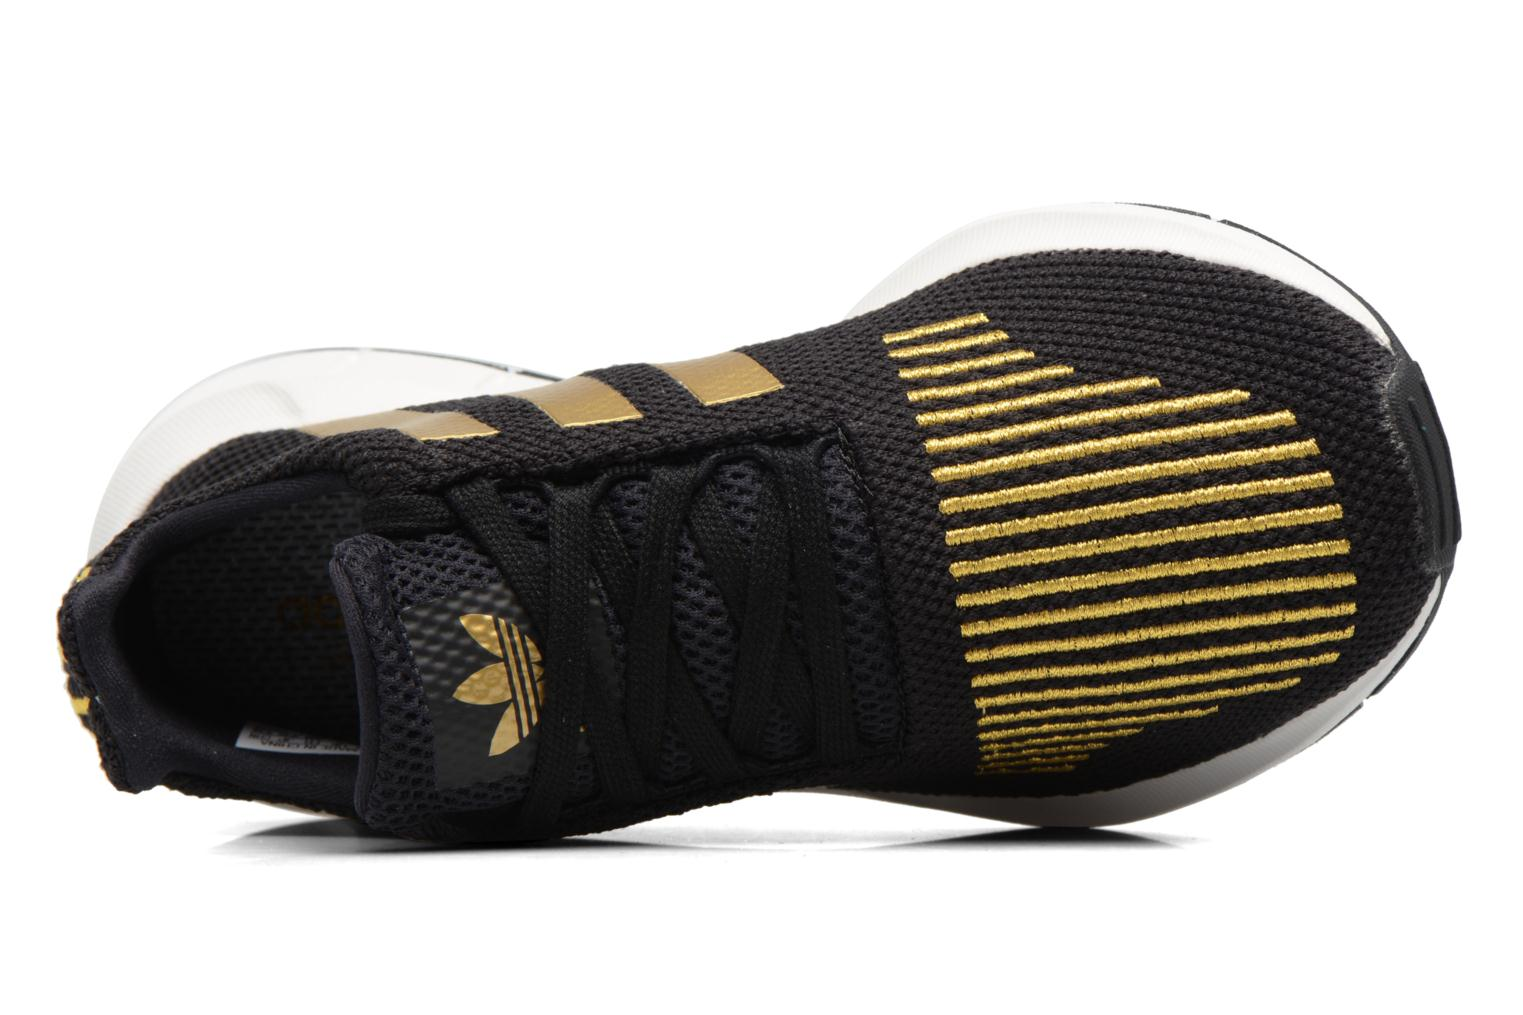 Deportivas Adidas Originals Swift Run W Oro y bronce vista lateral izquierda